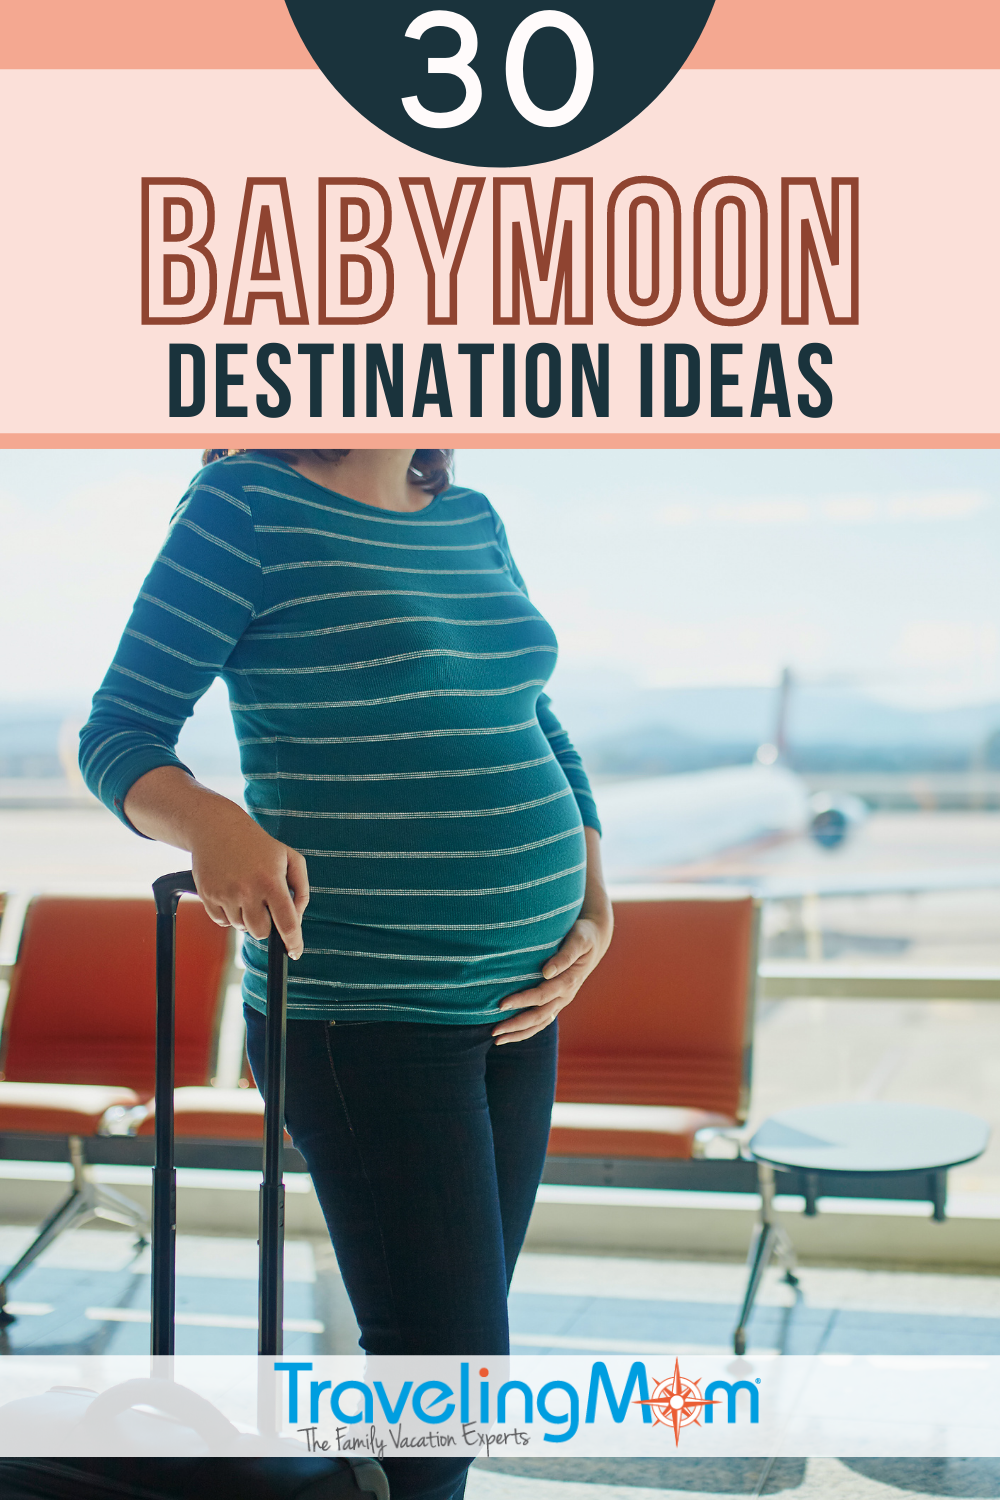 pin with text 30 babymoon destination ideas with image of pregnant woman's torso with suitcase in airport background